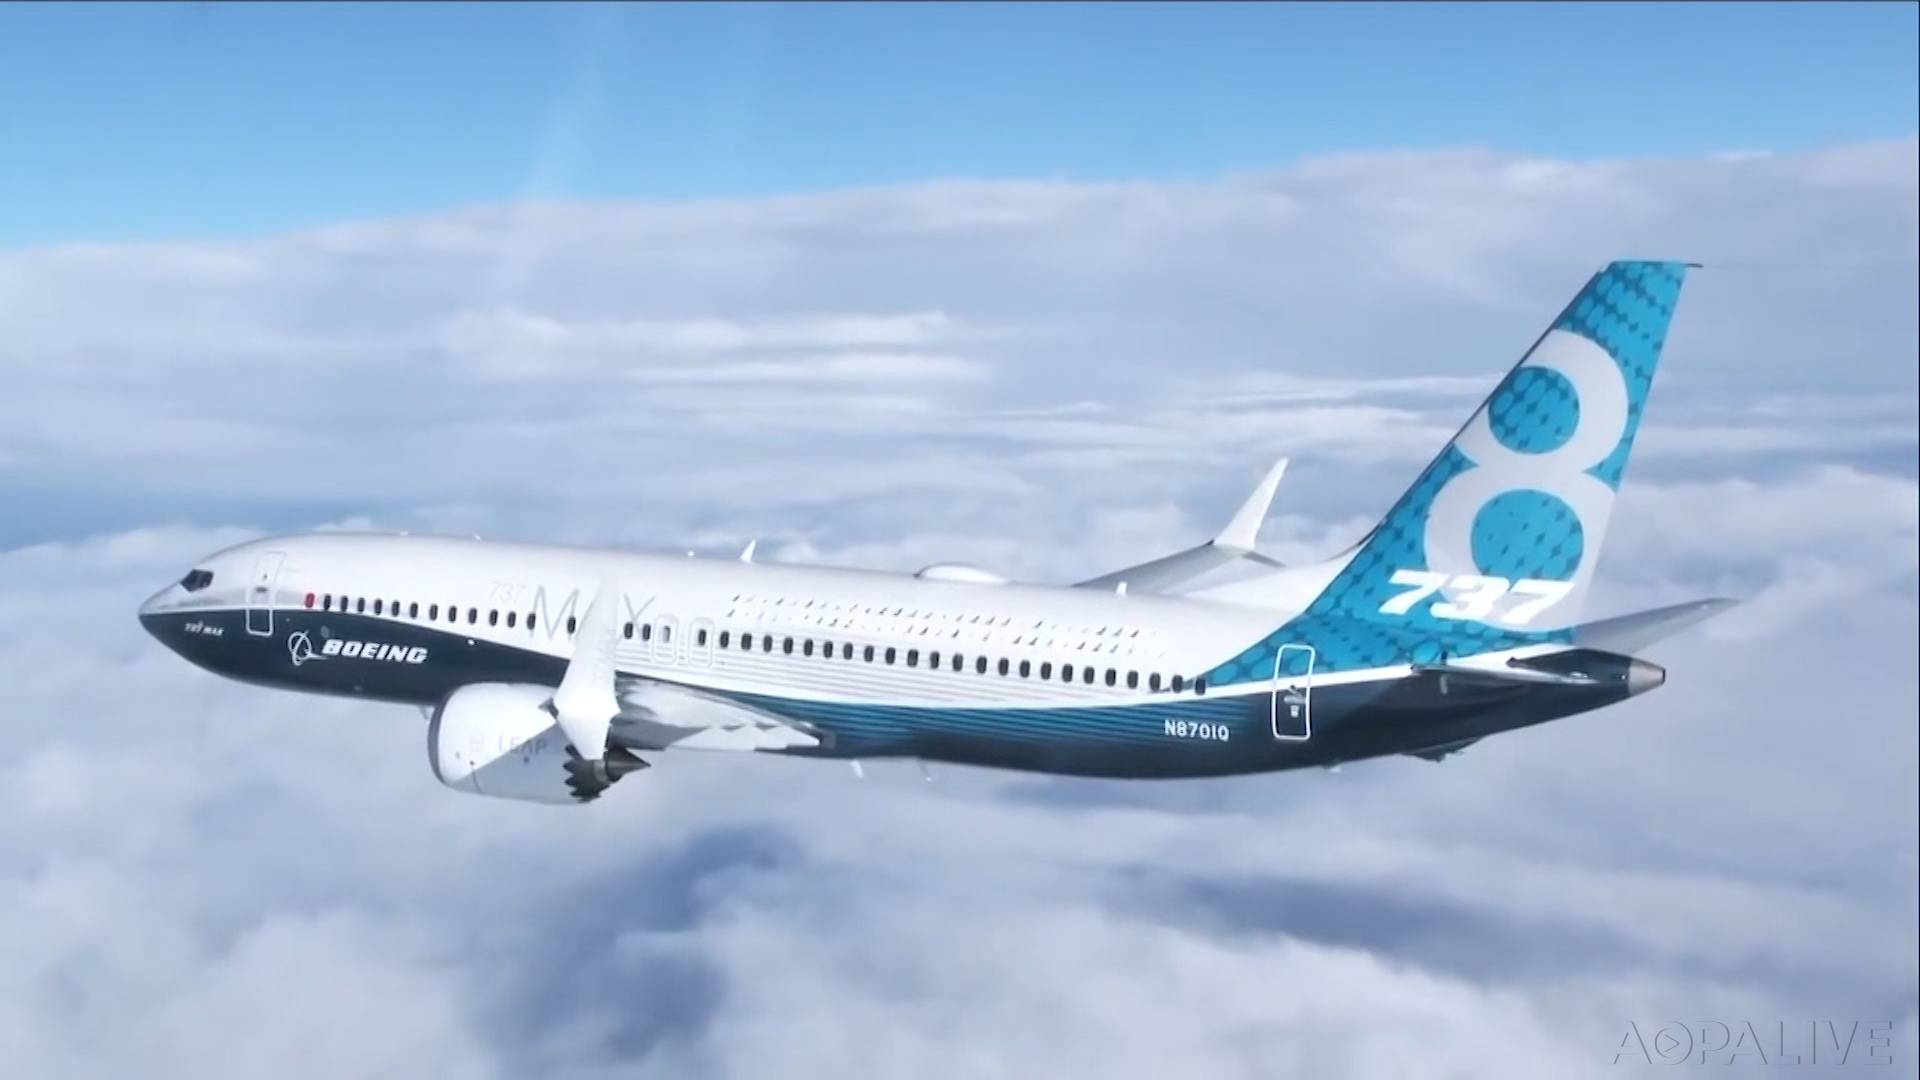 Pilots offer insights on Boeing 737 crashes - AOPA